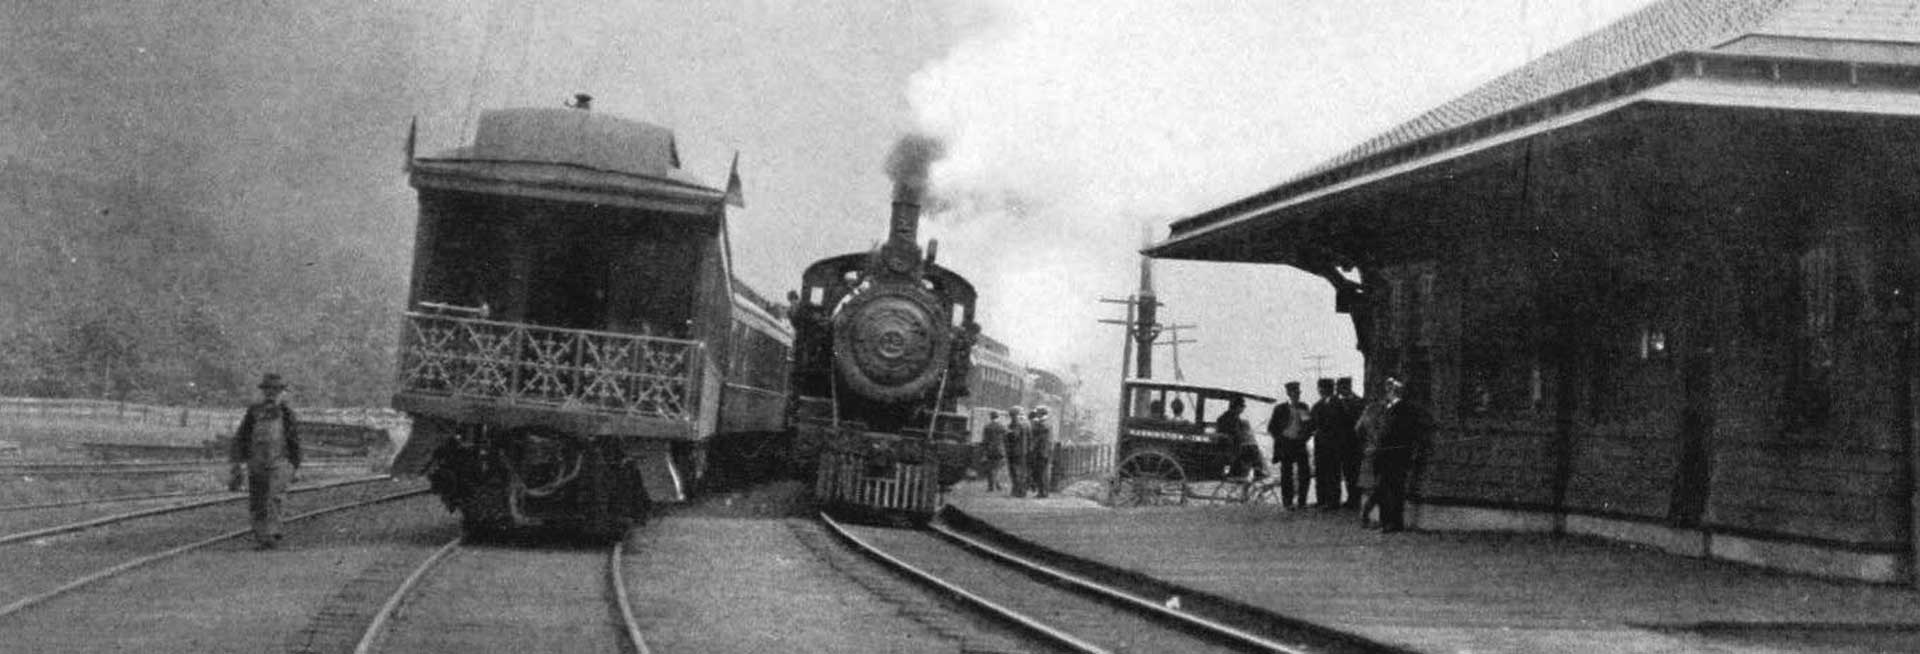 historical photo of train